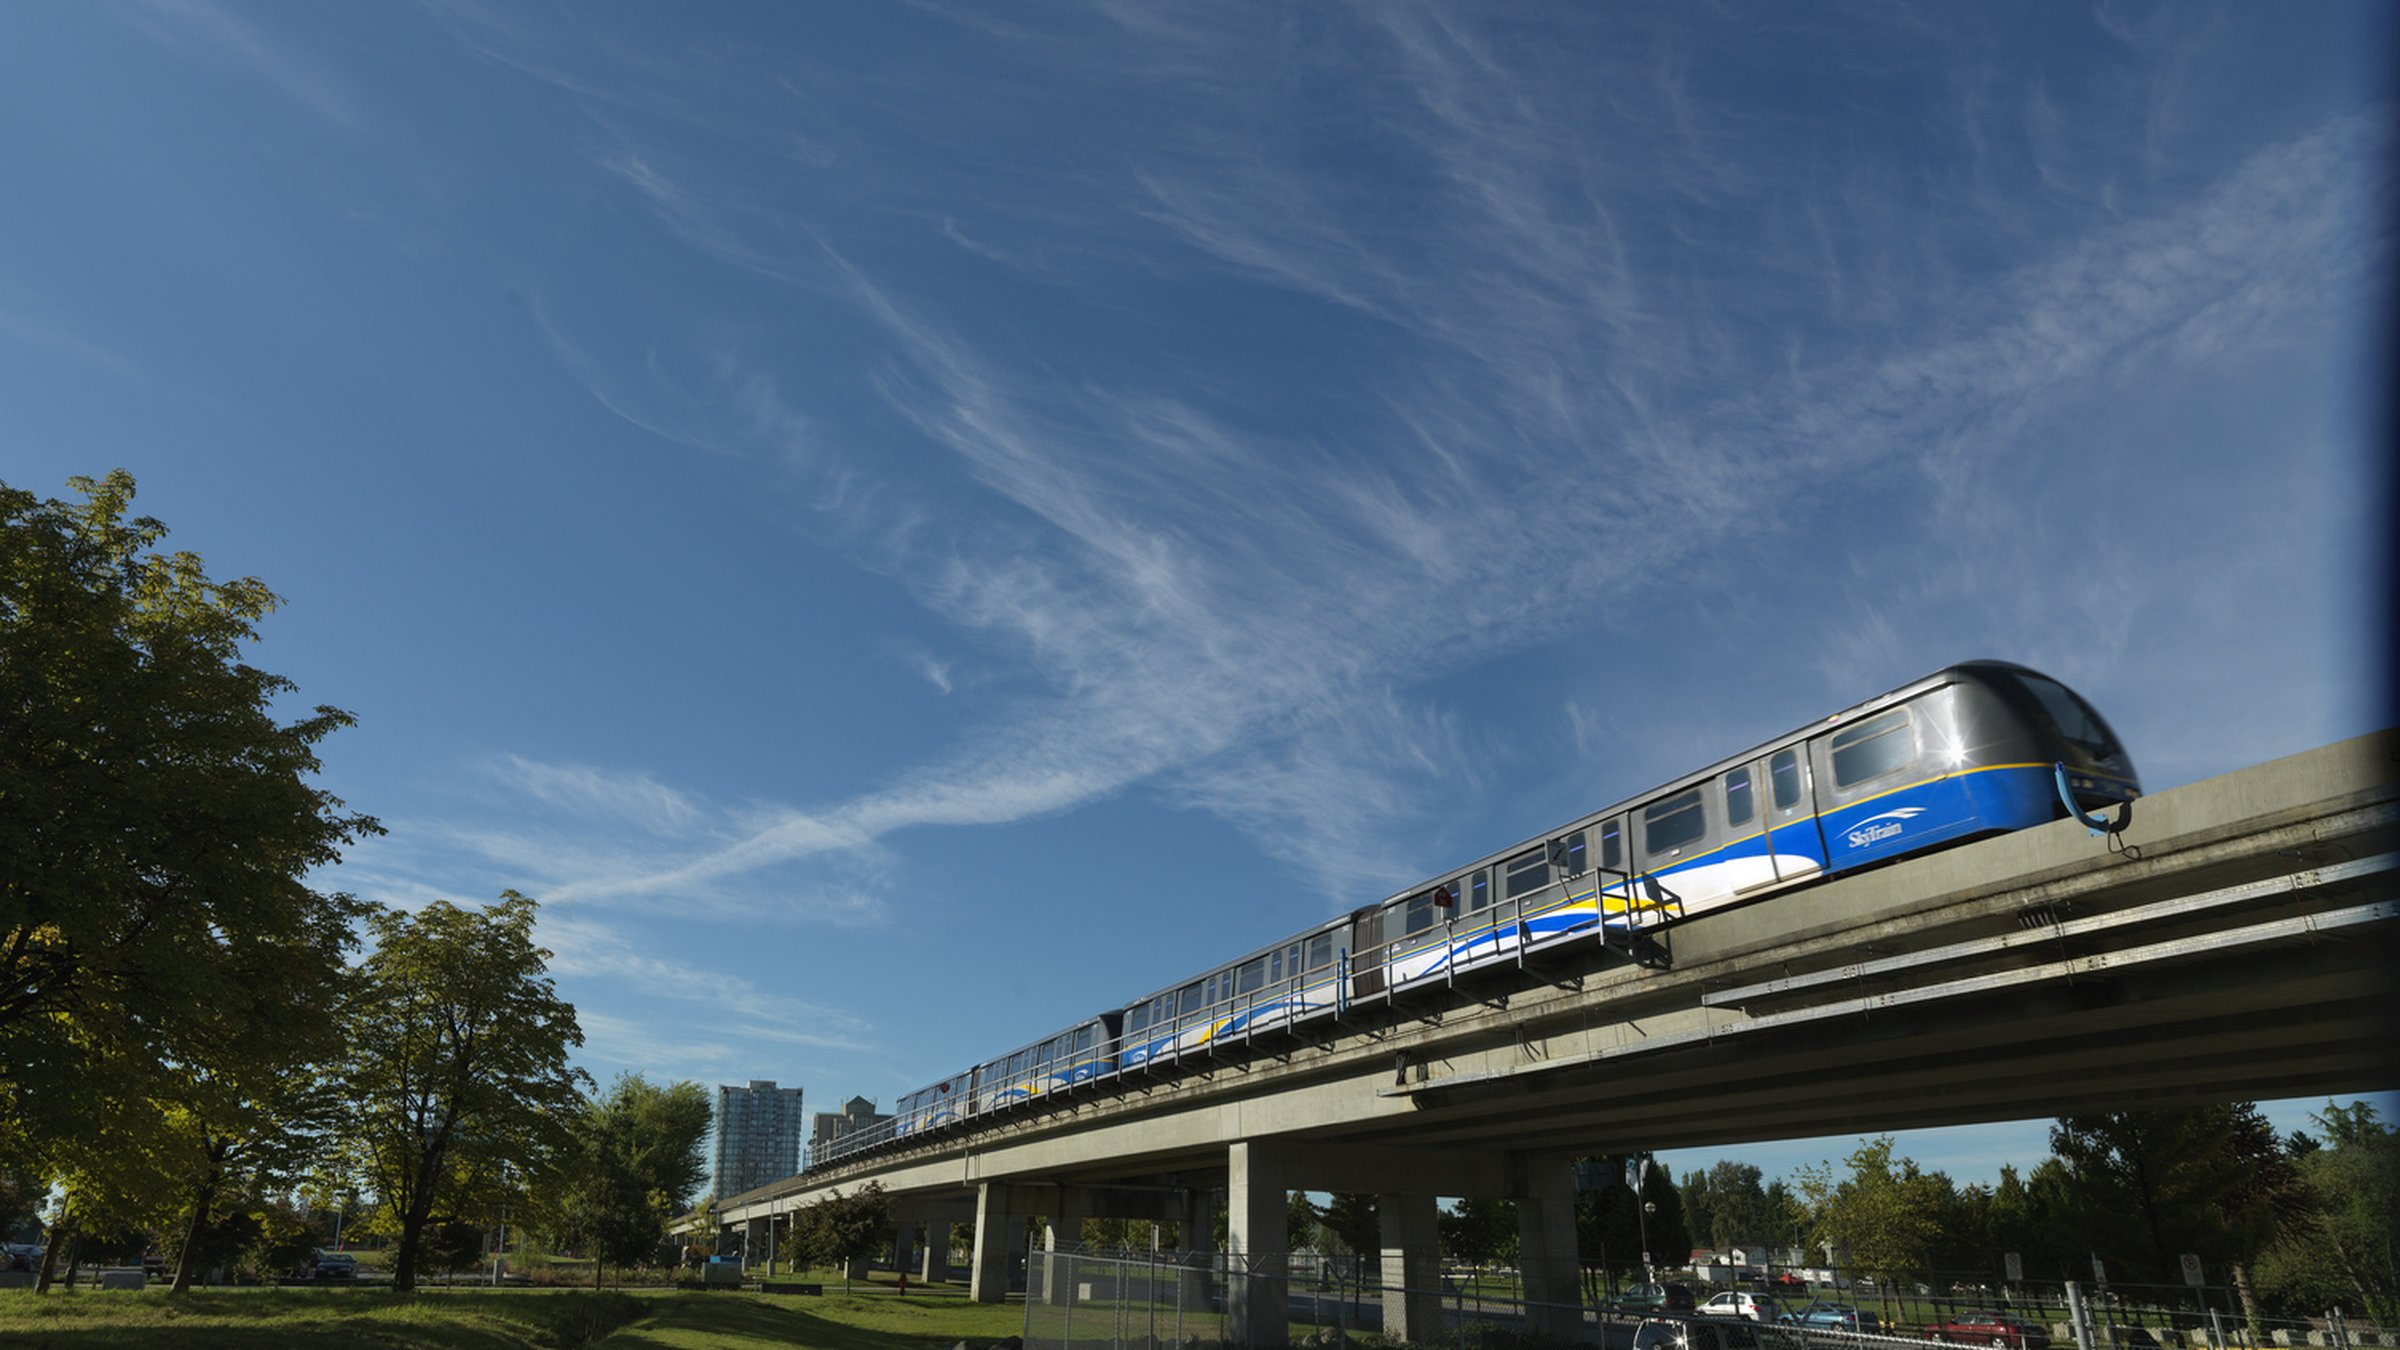 Top Employer: TransLink (South Coast British Columbia